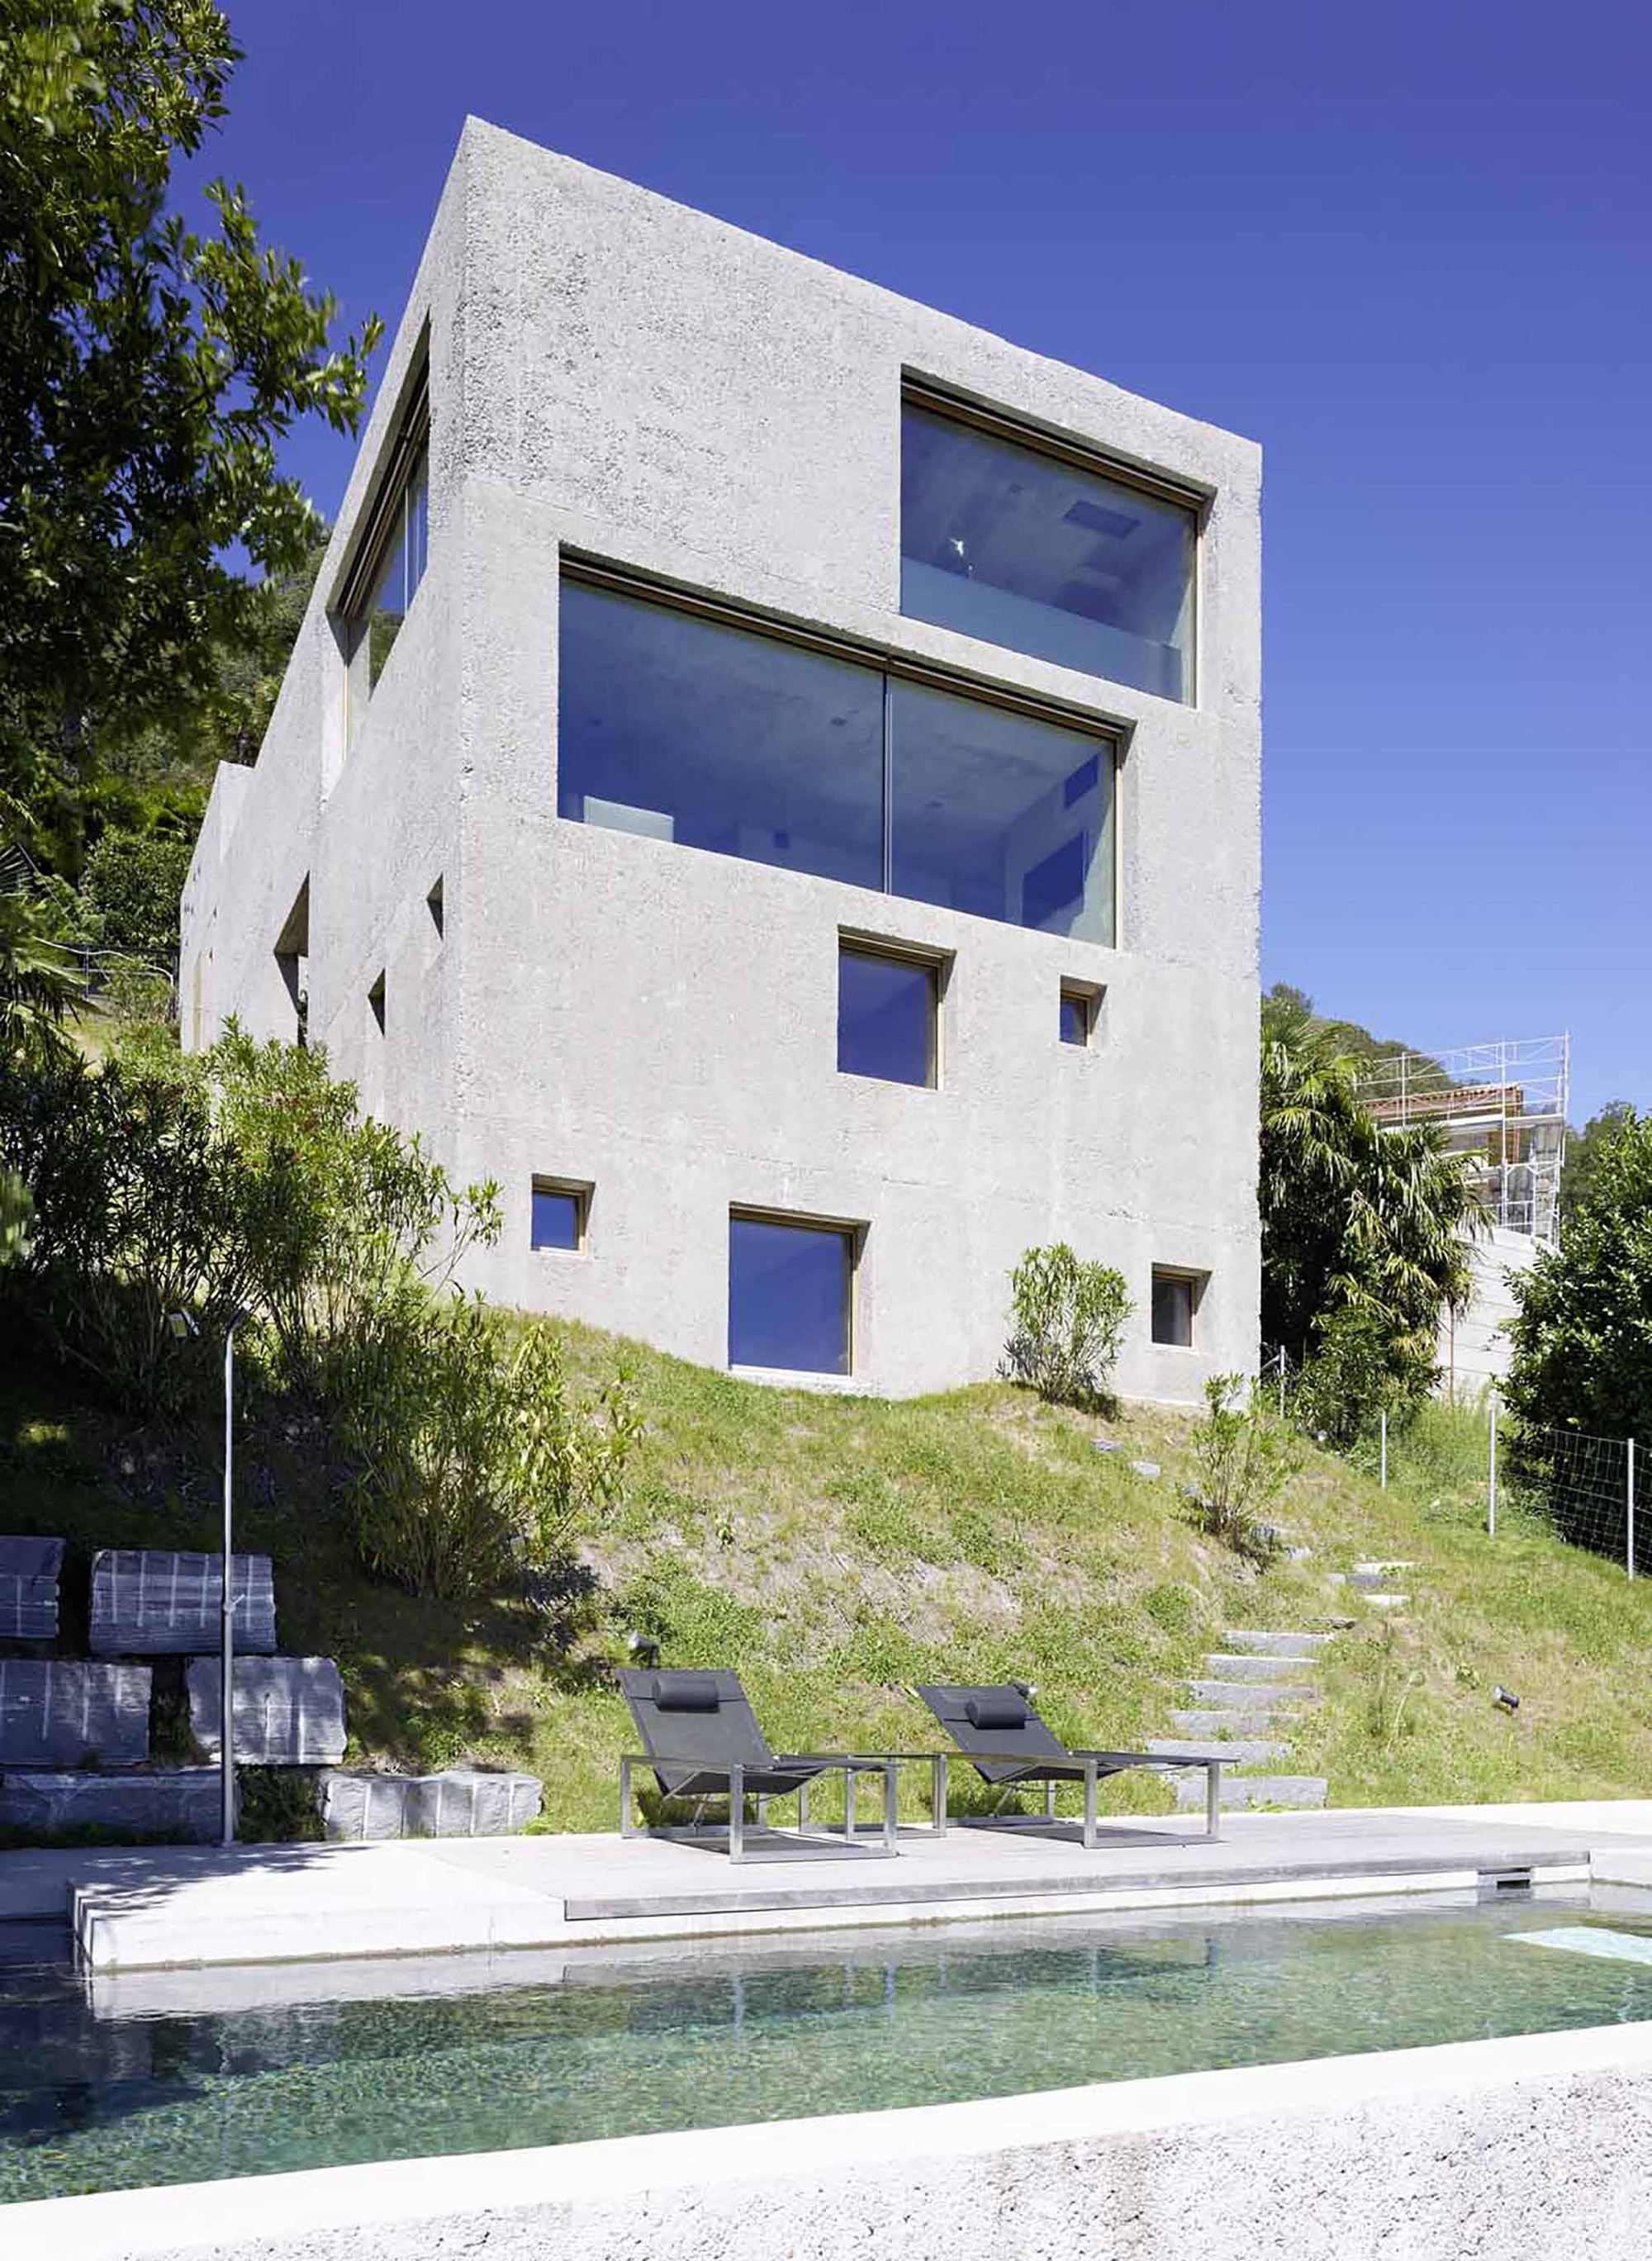 House in brissago by wespi de meuron romeo architects in for Architecture suisse